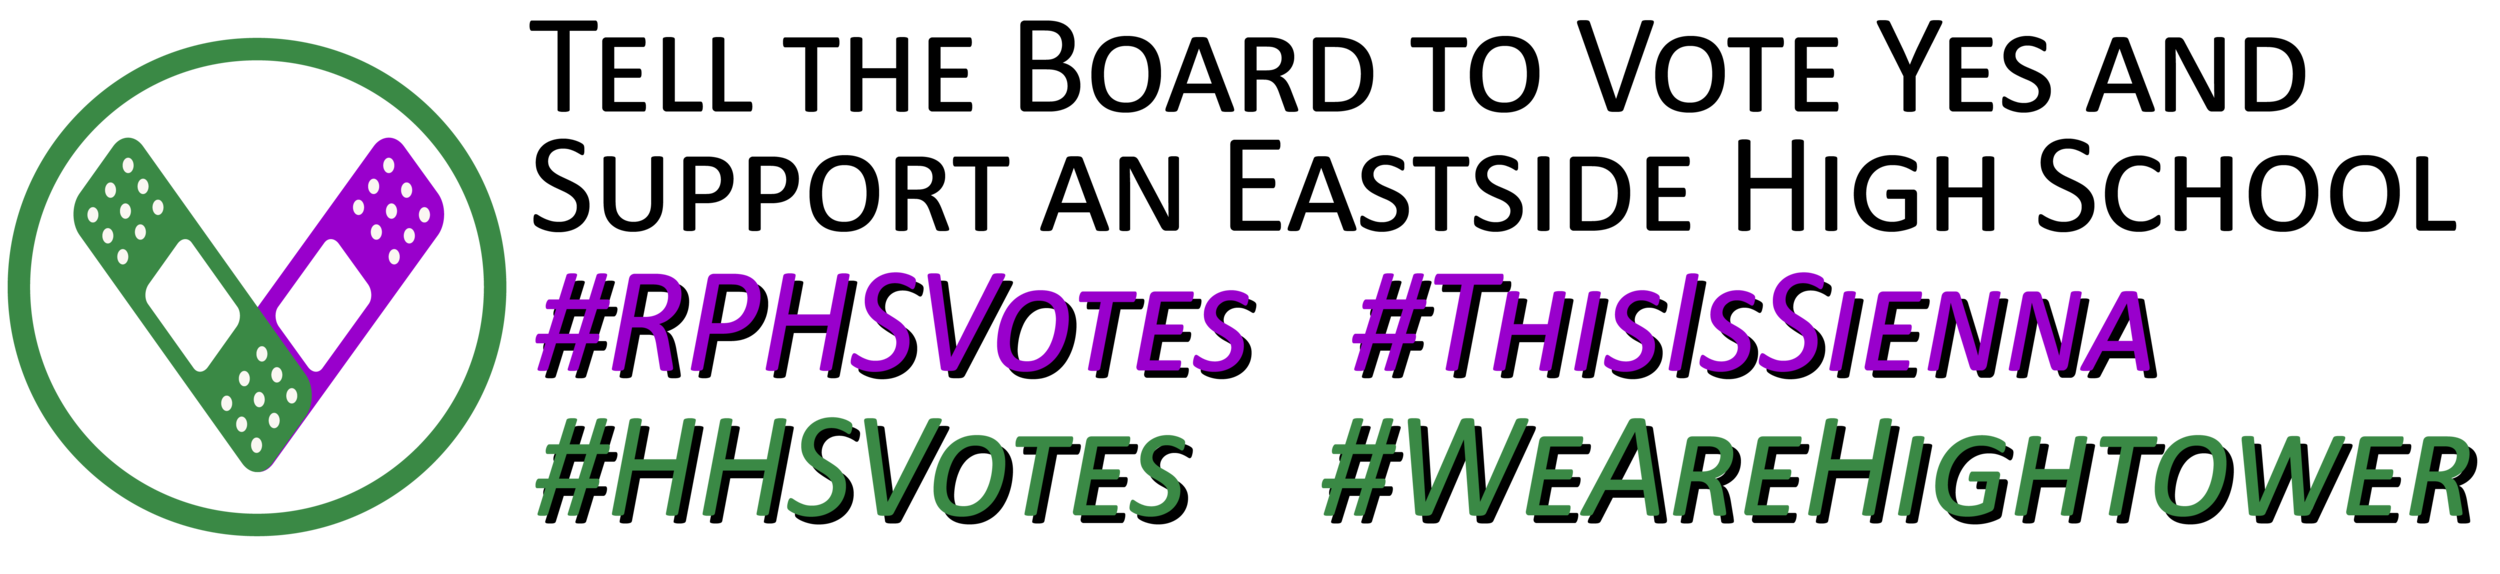 RPHS-HHS-VoteYes-05.png